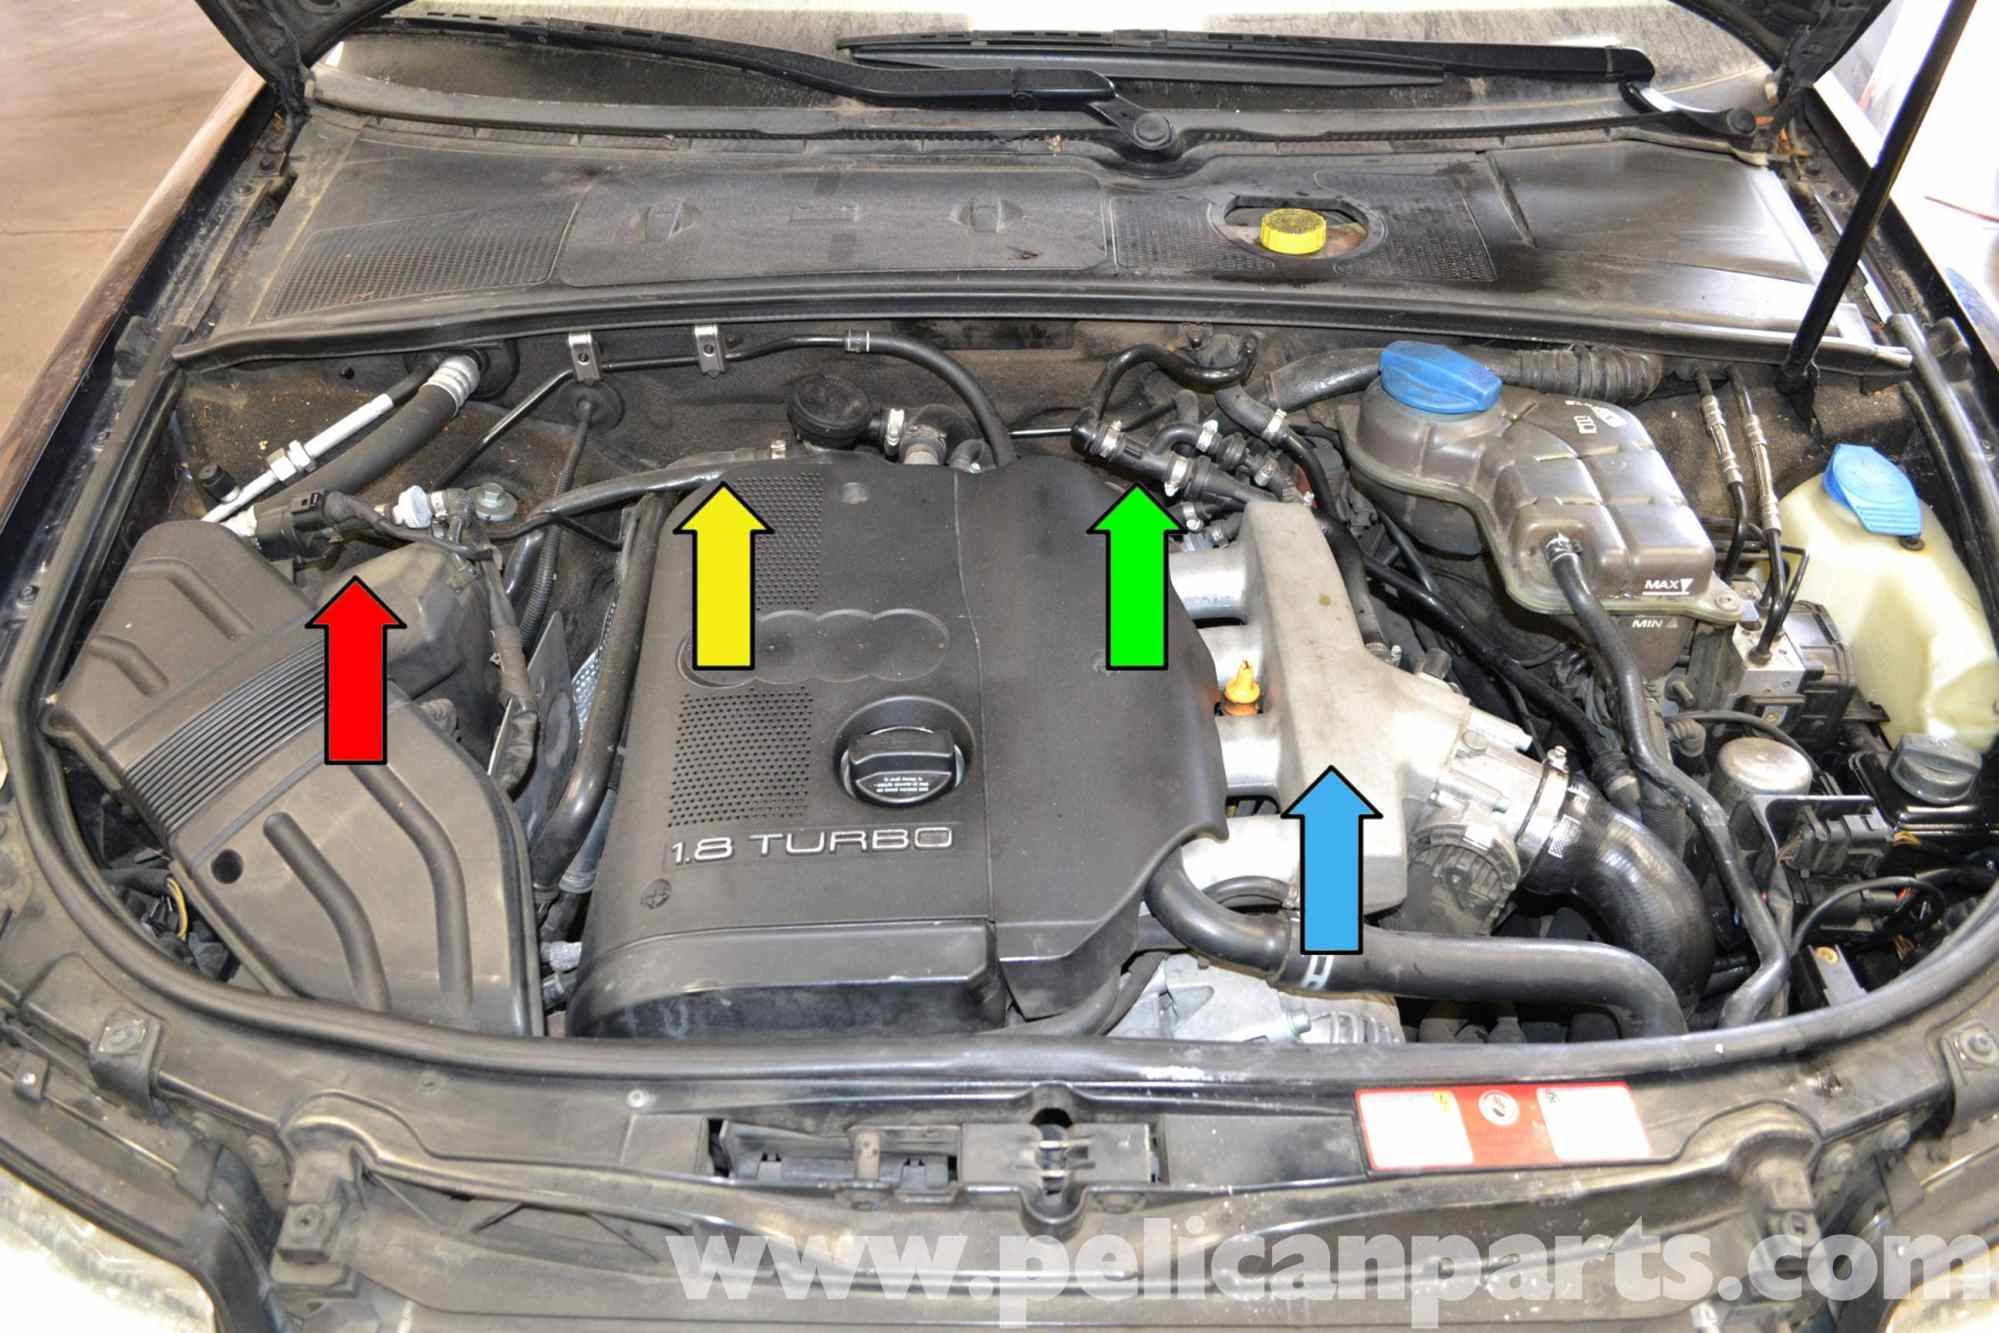 hight resolution of 2002 audi a6 quattro engine diagrams wiring diagram inside 2001 audi a4 1 8t engine diagram